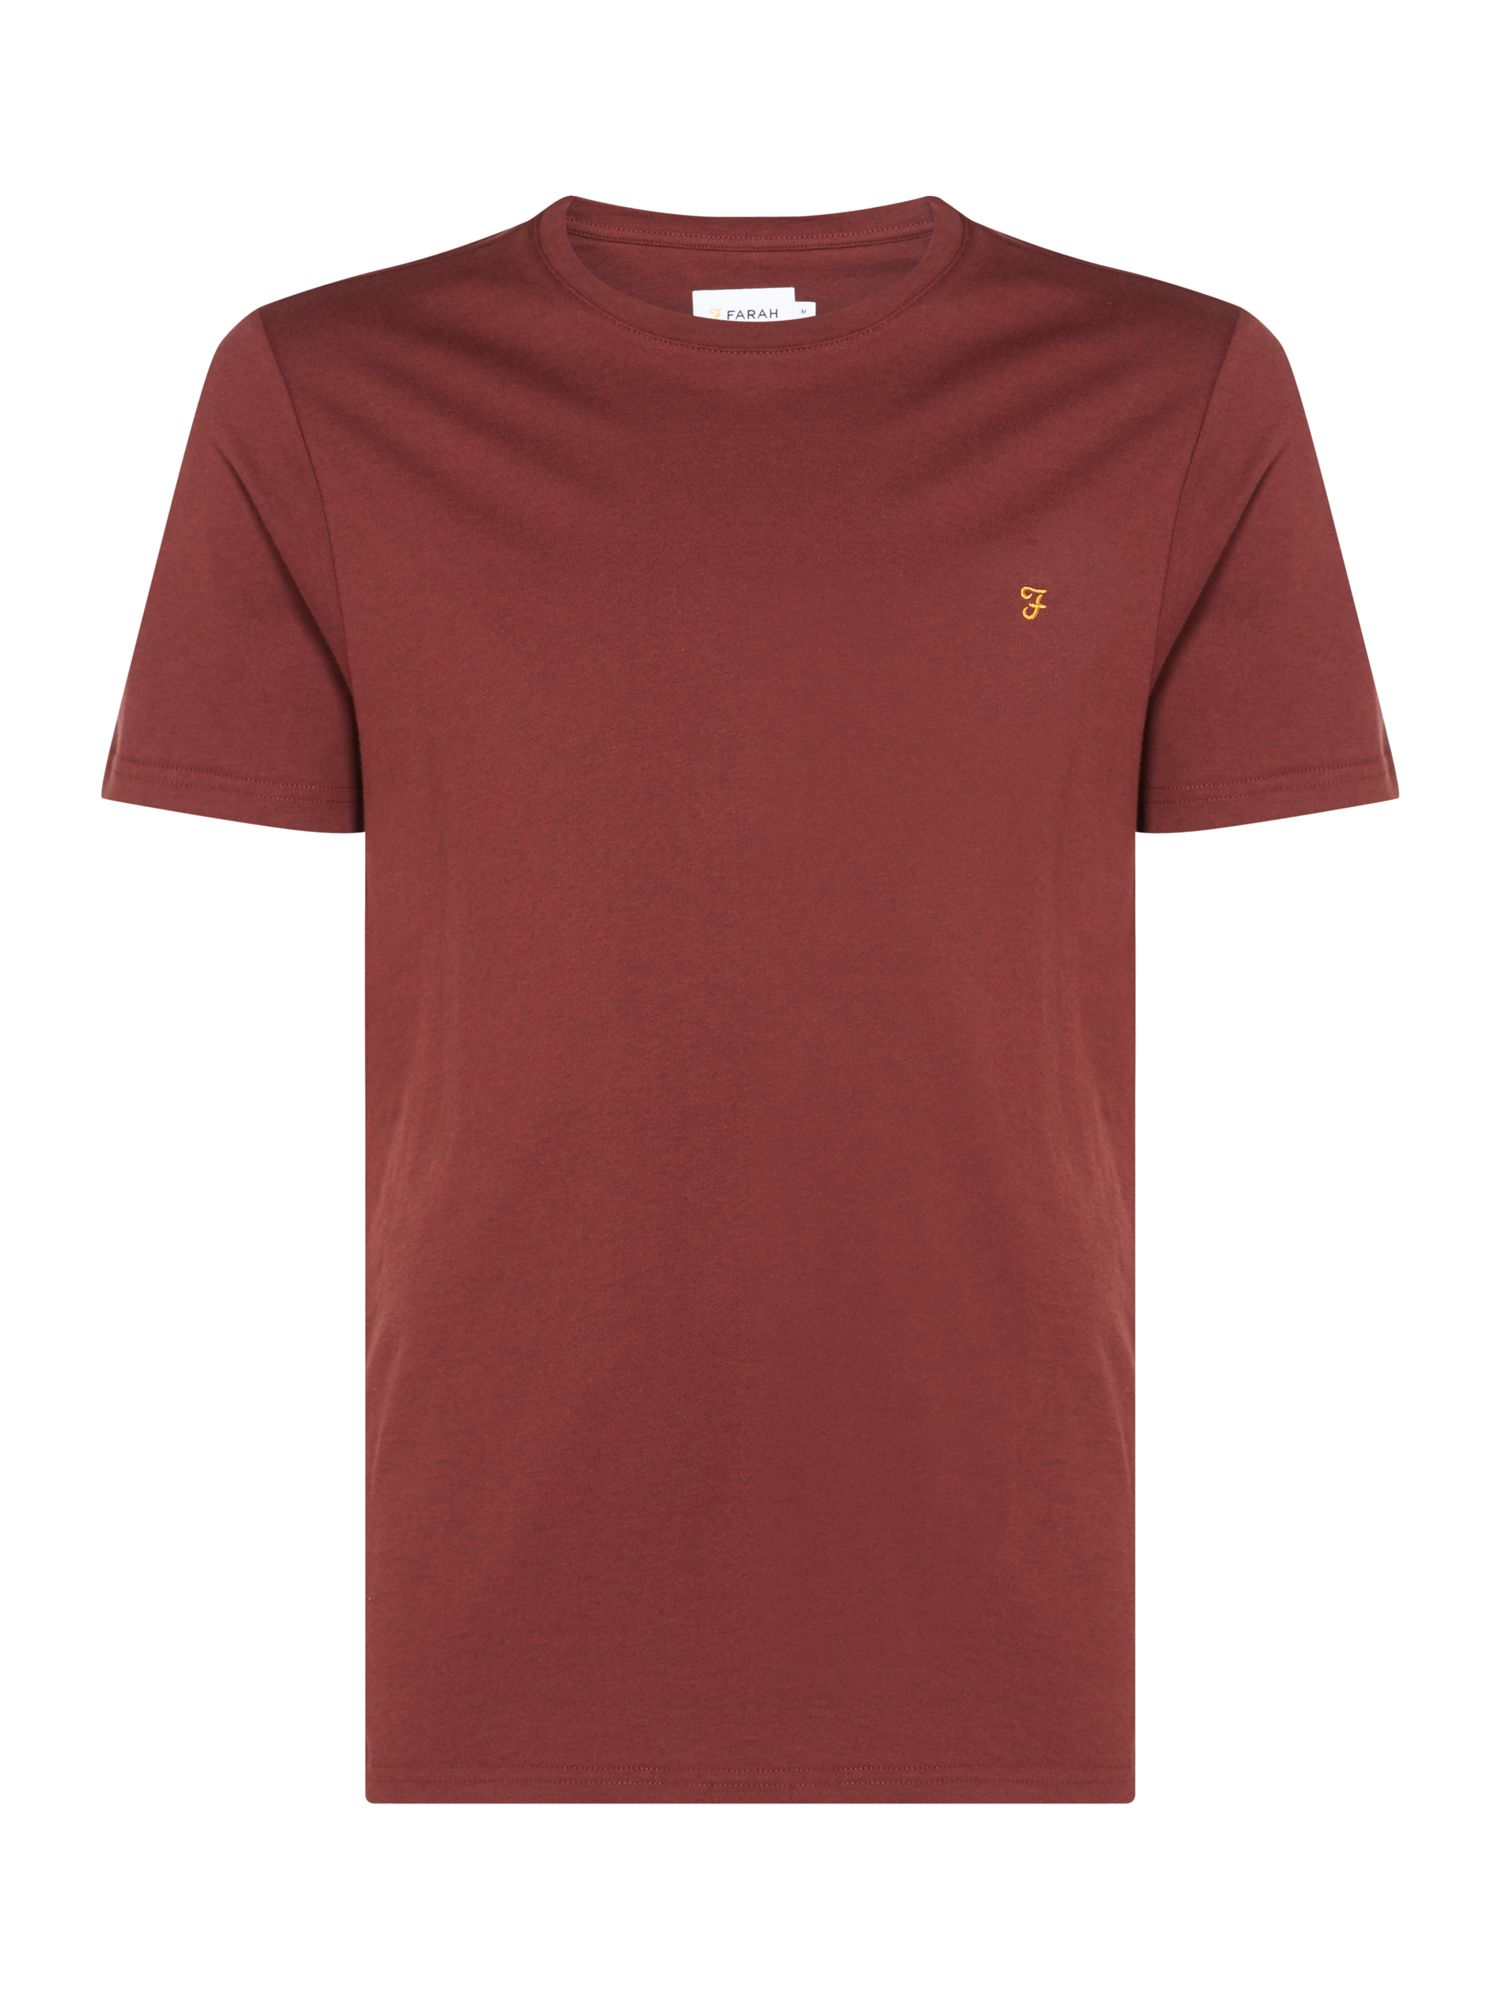 Men's Farah Denny Slim Marl T-Shirt, Red